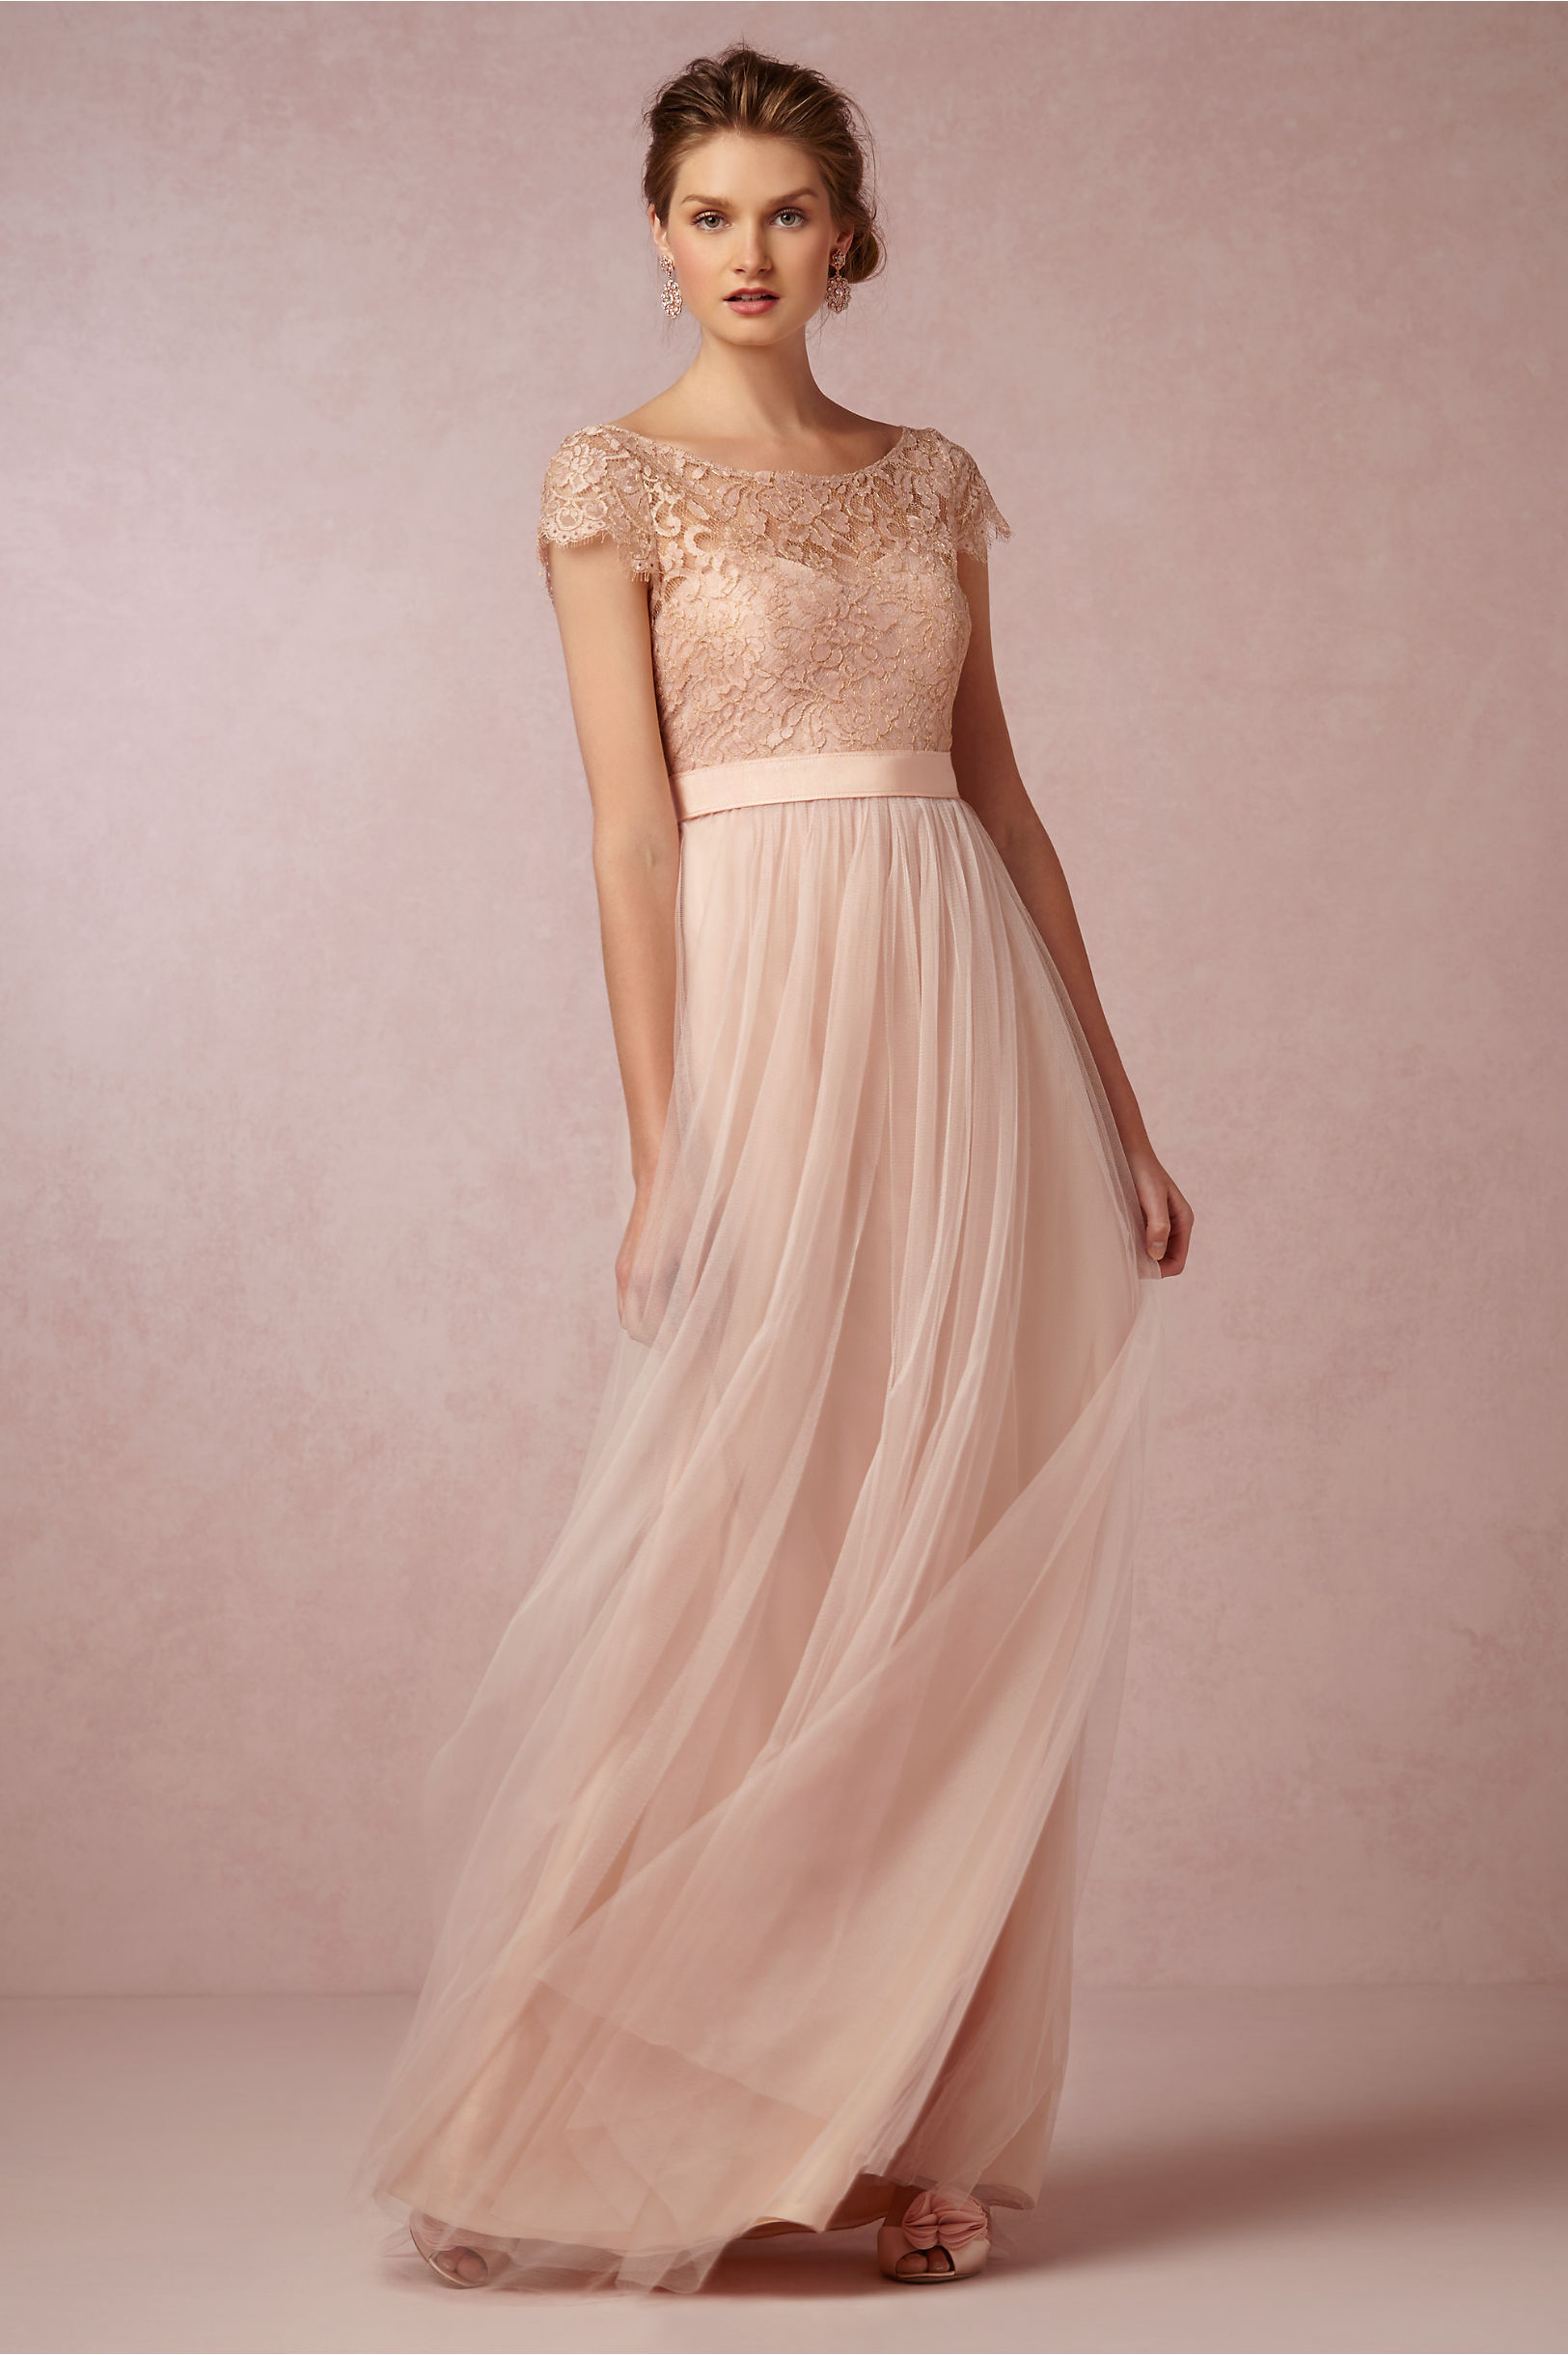 Vintage  Bateau Neck Illusion Cap Sleeved Lace Blush Tulle Bridesmaid Dress _1